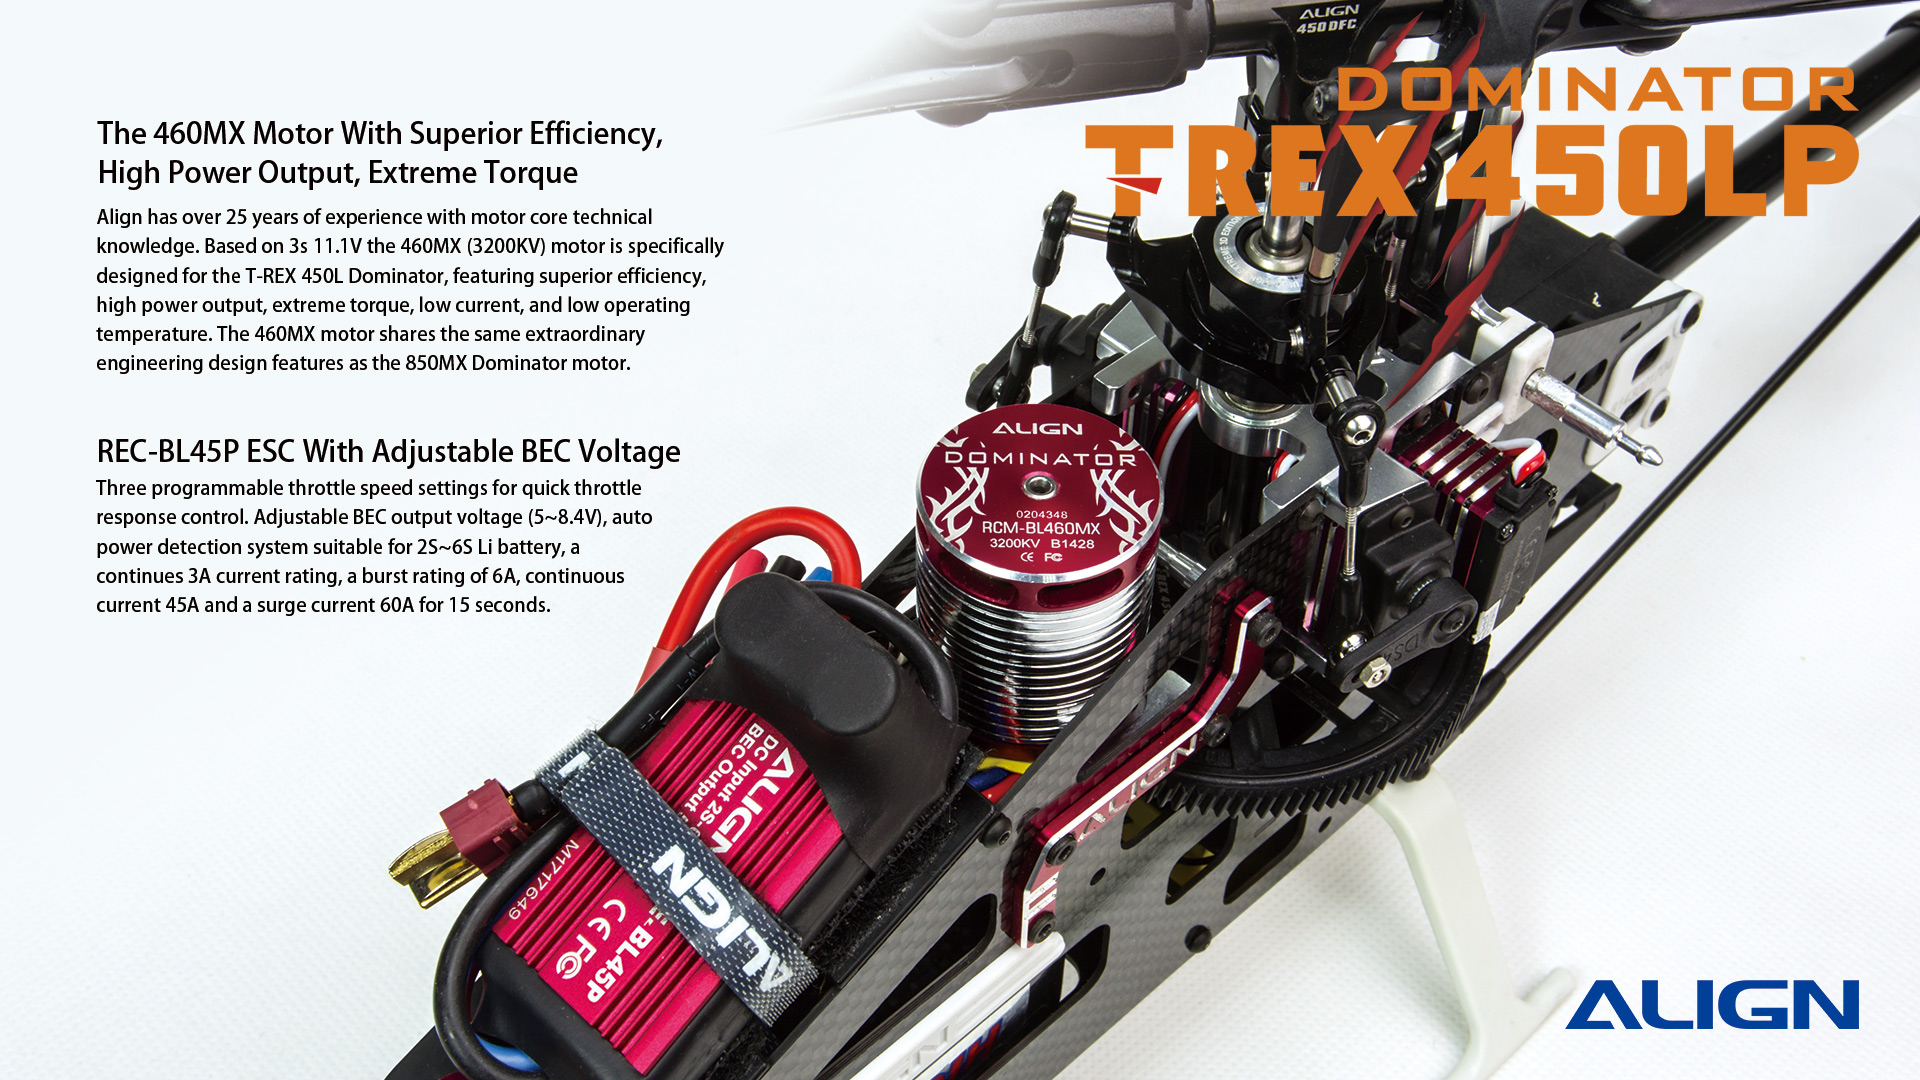 New Released T Rex 450lp Artf Align Blade 450 3d Rc Helicopter Parts Diagram Free Engine Image For 12